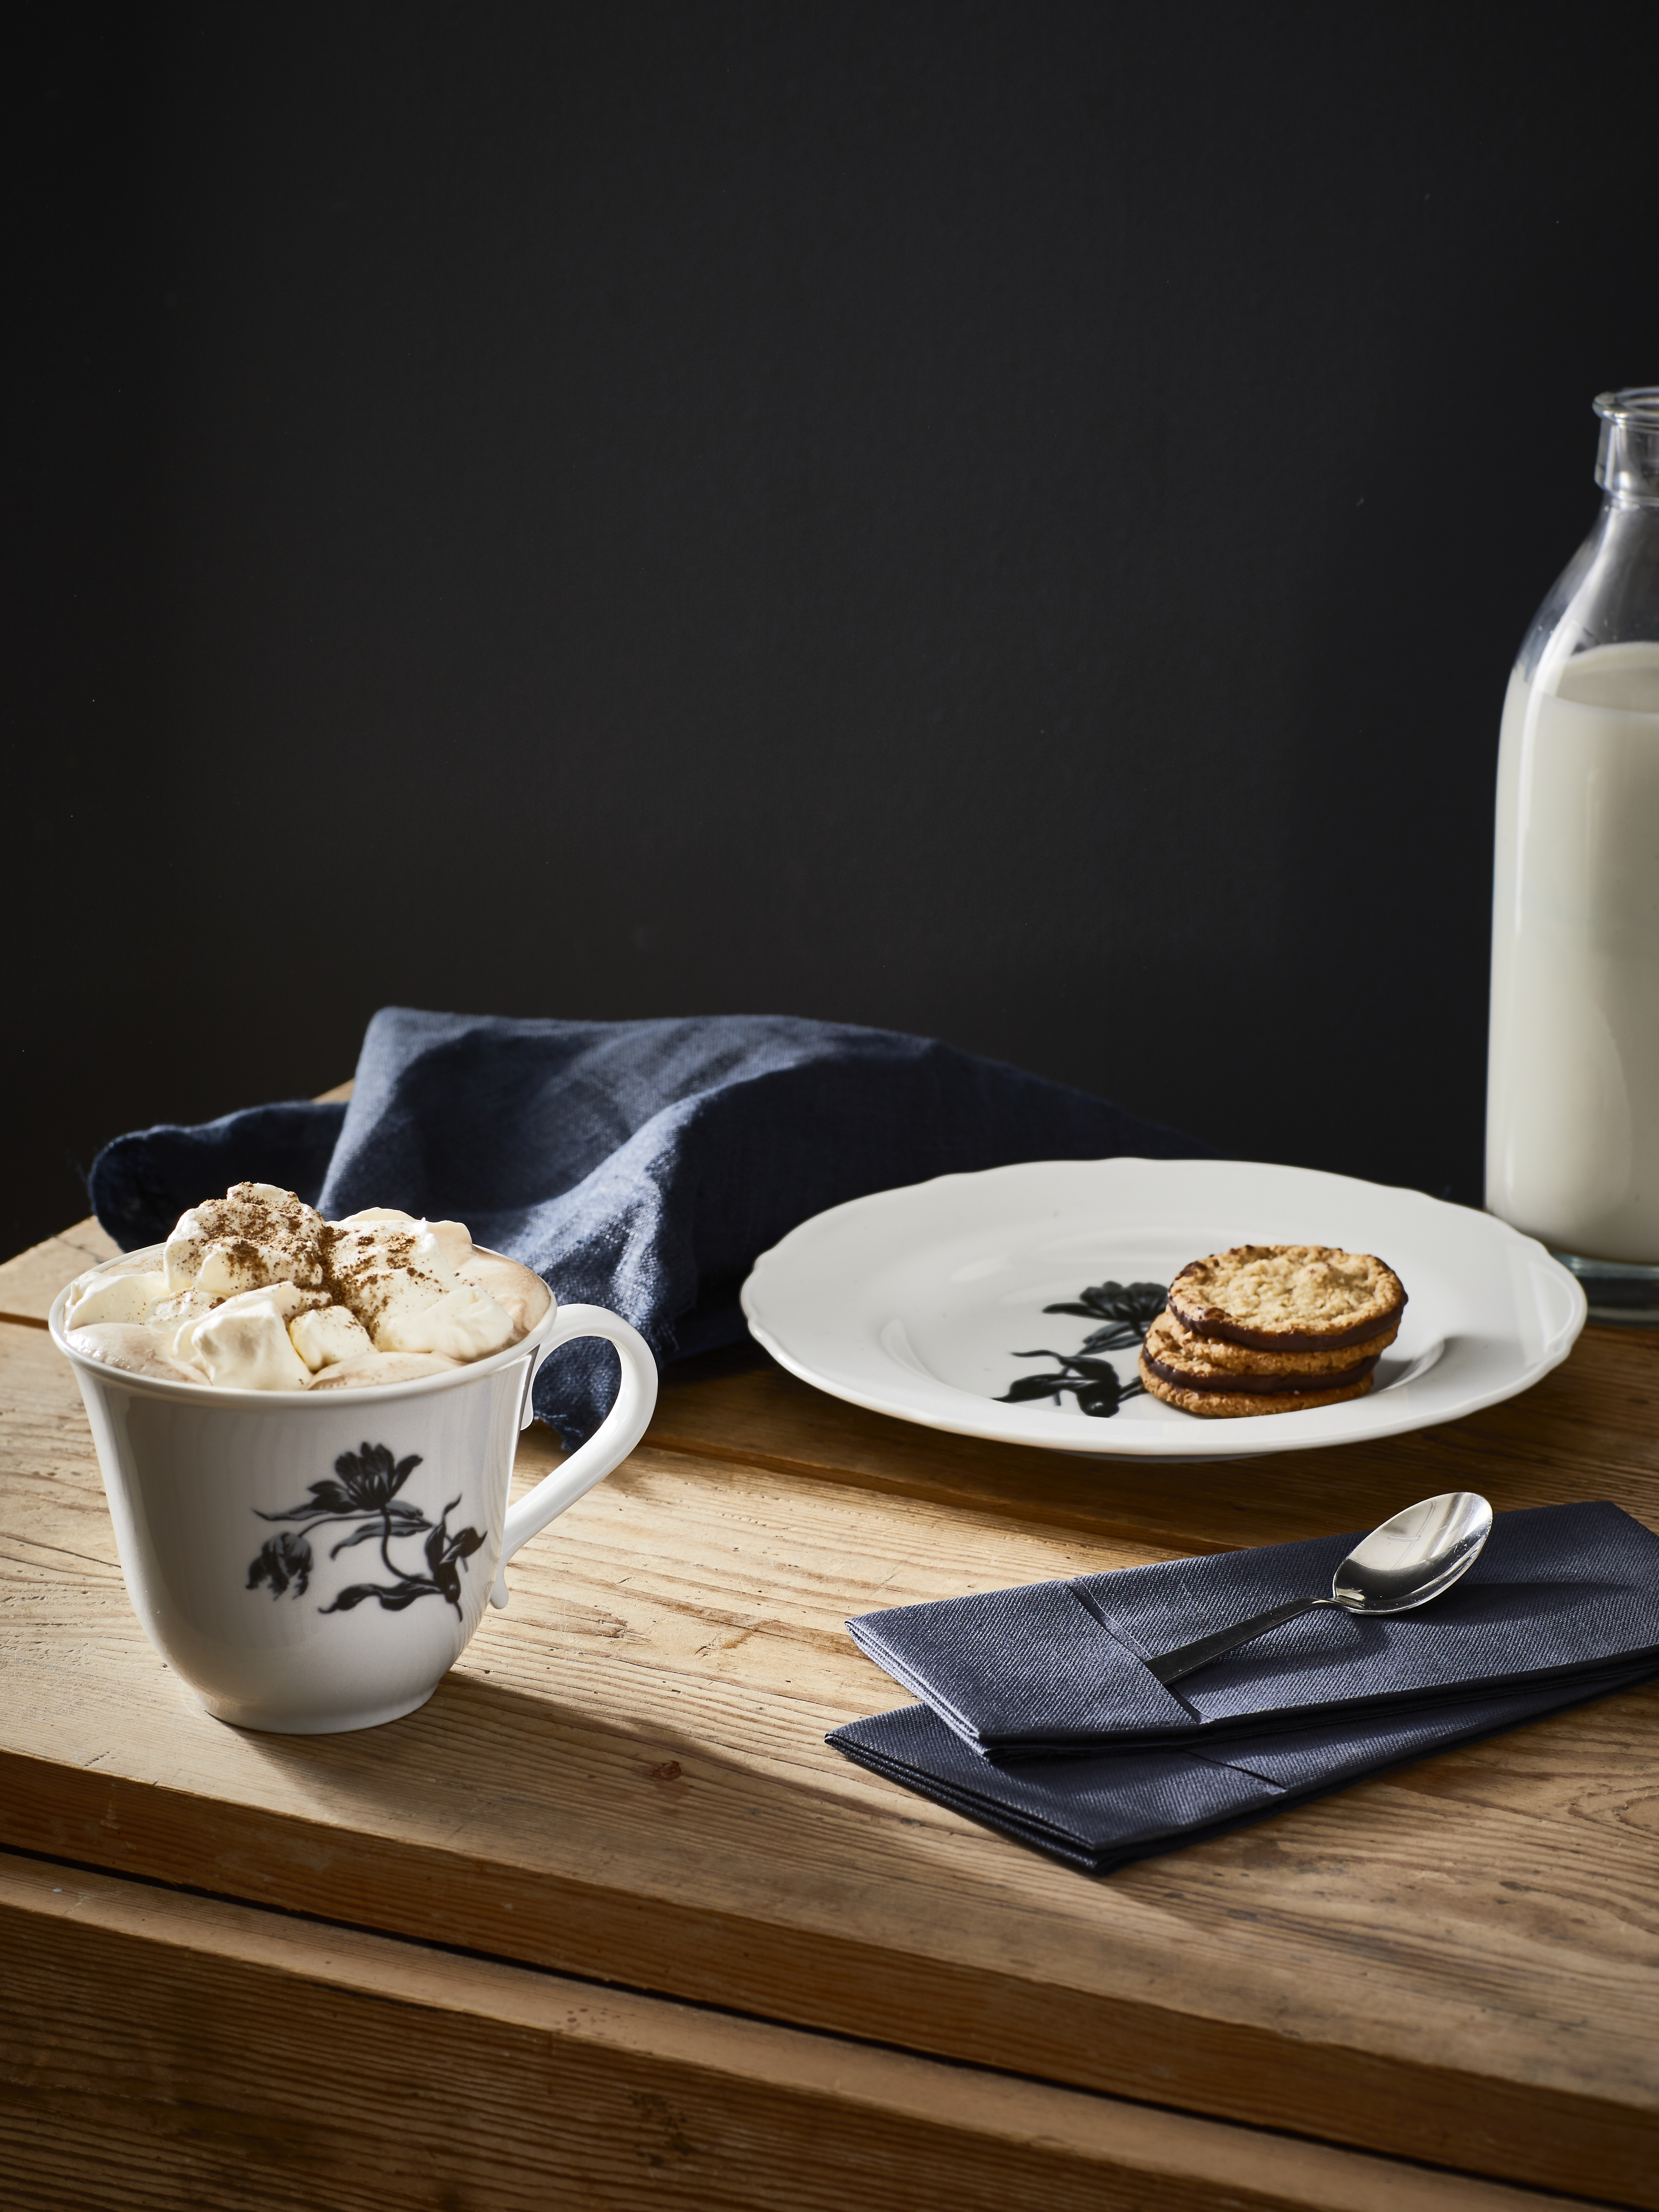 A wood table top with a plate of cookies, a jar of milk and a cup of hot cocoa sitting with black napkins and cutlery.